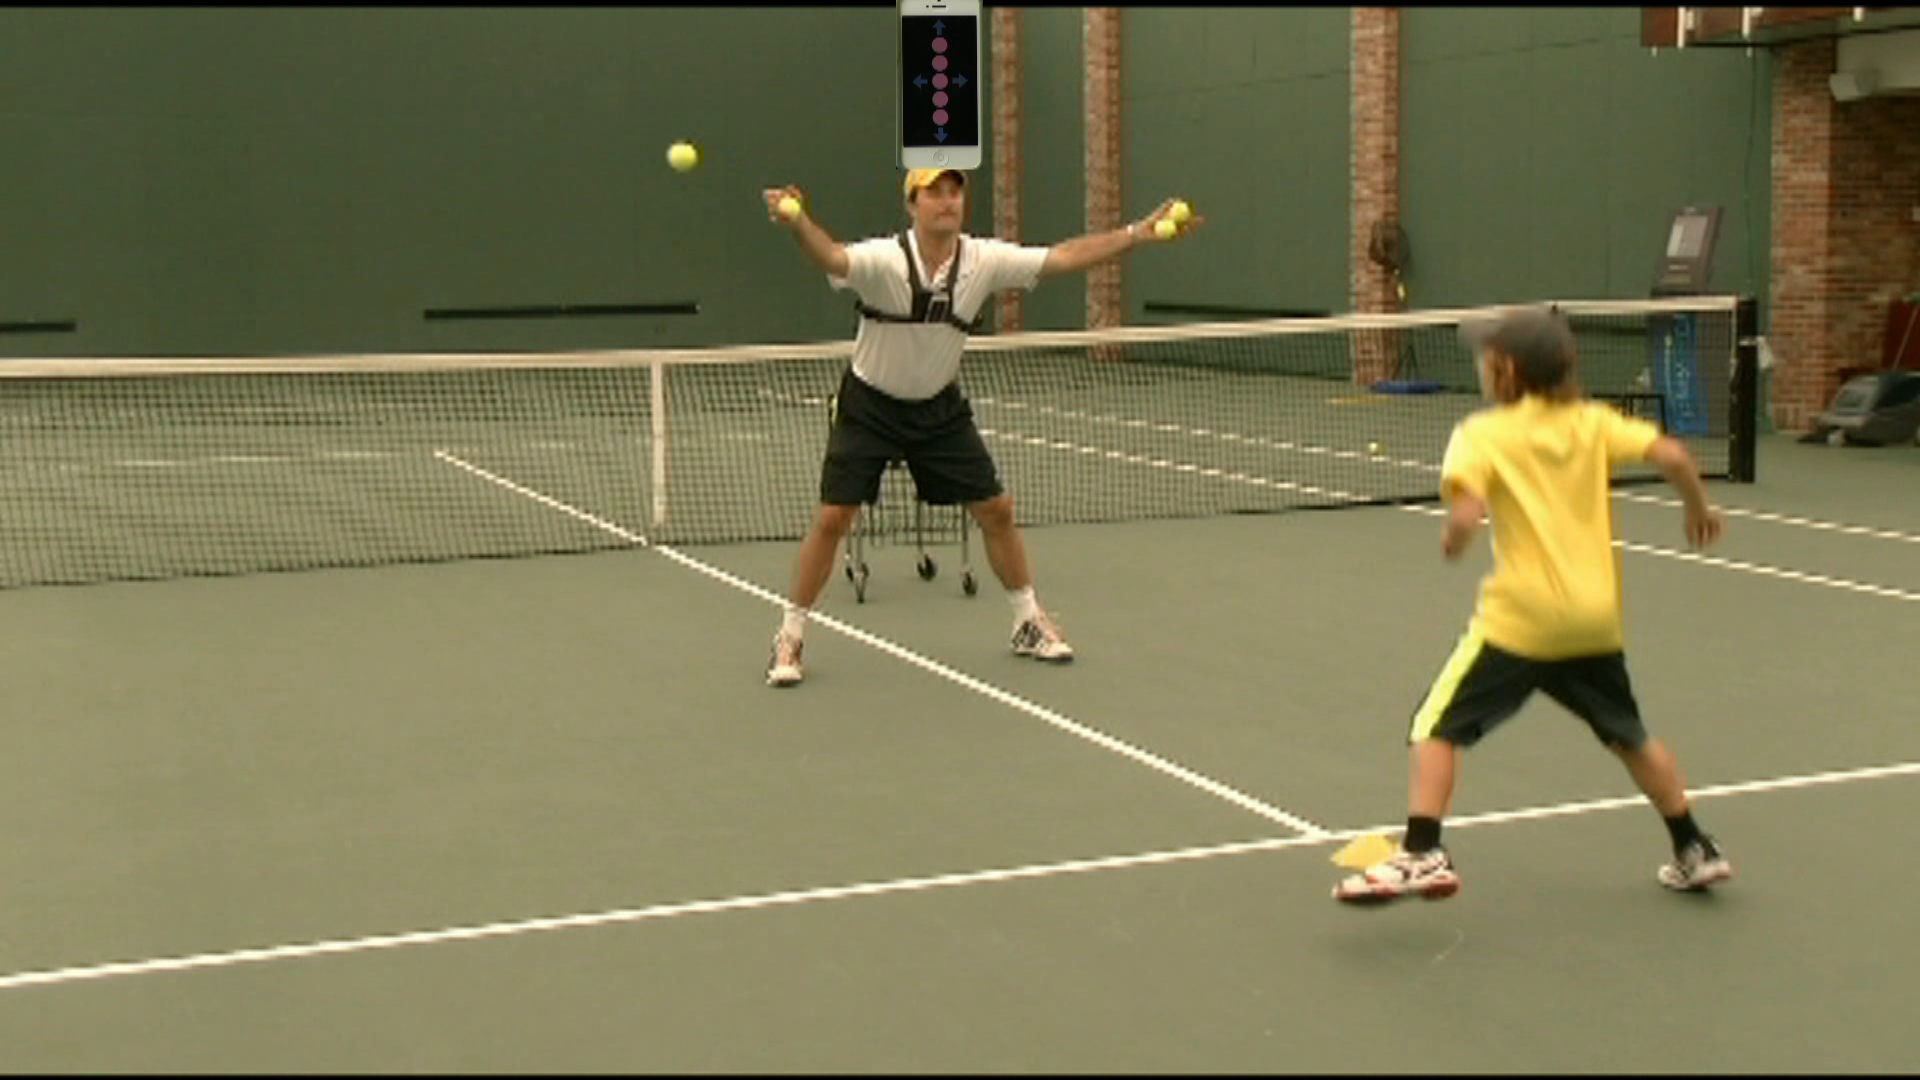 Tennis ball drills